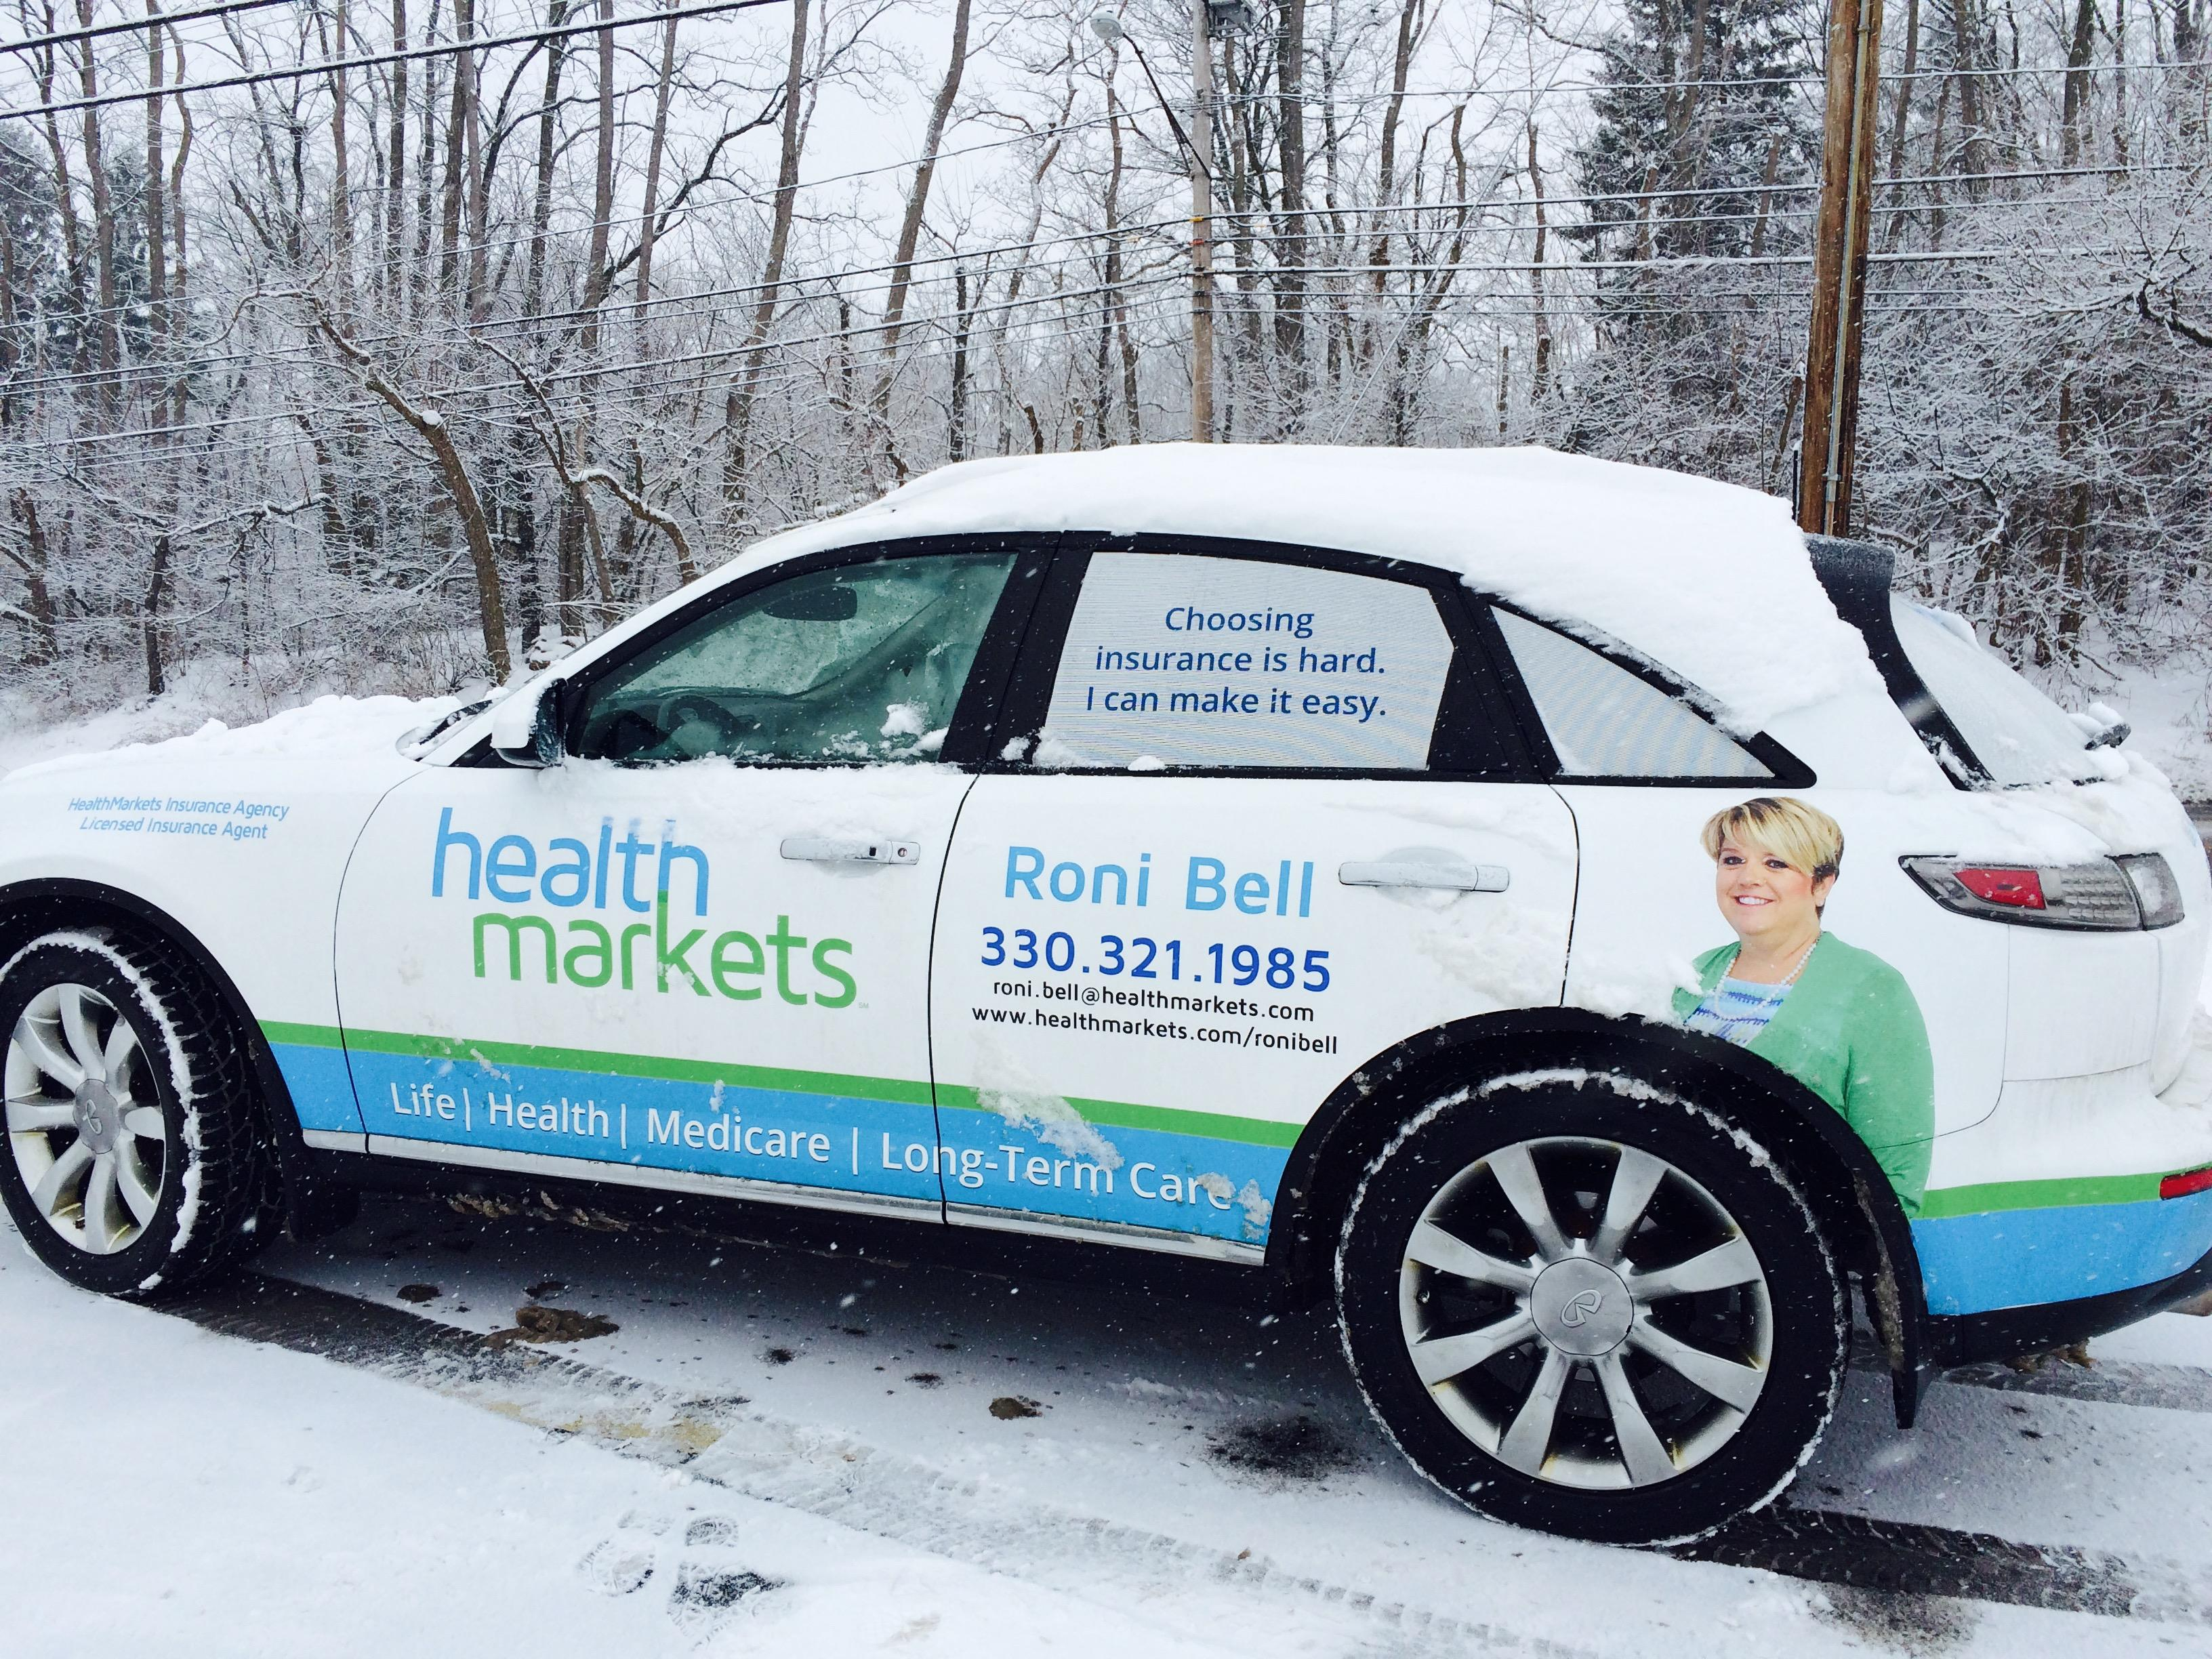 HealthMarkets Insurance - Roni Bell image 1